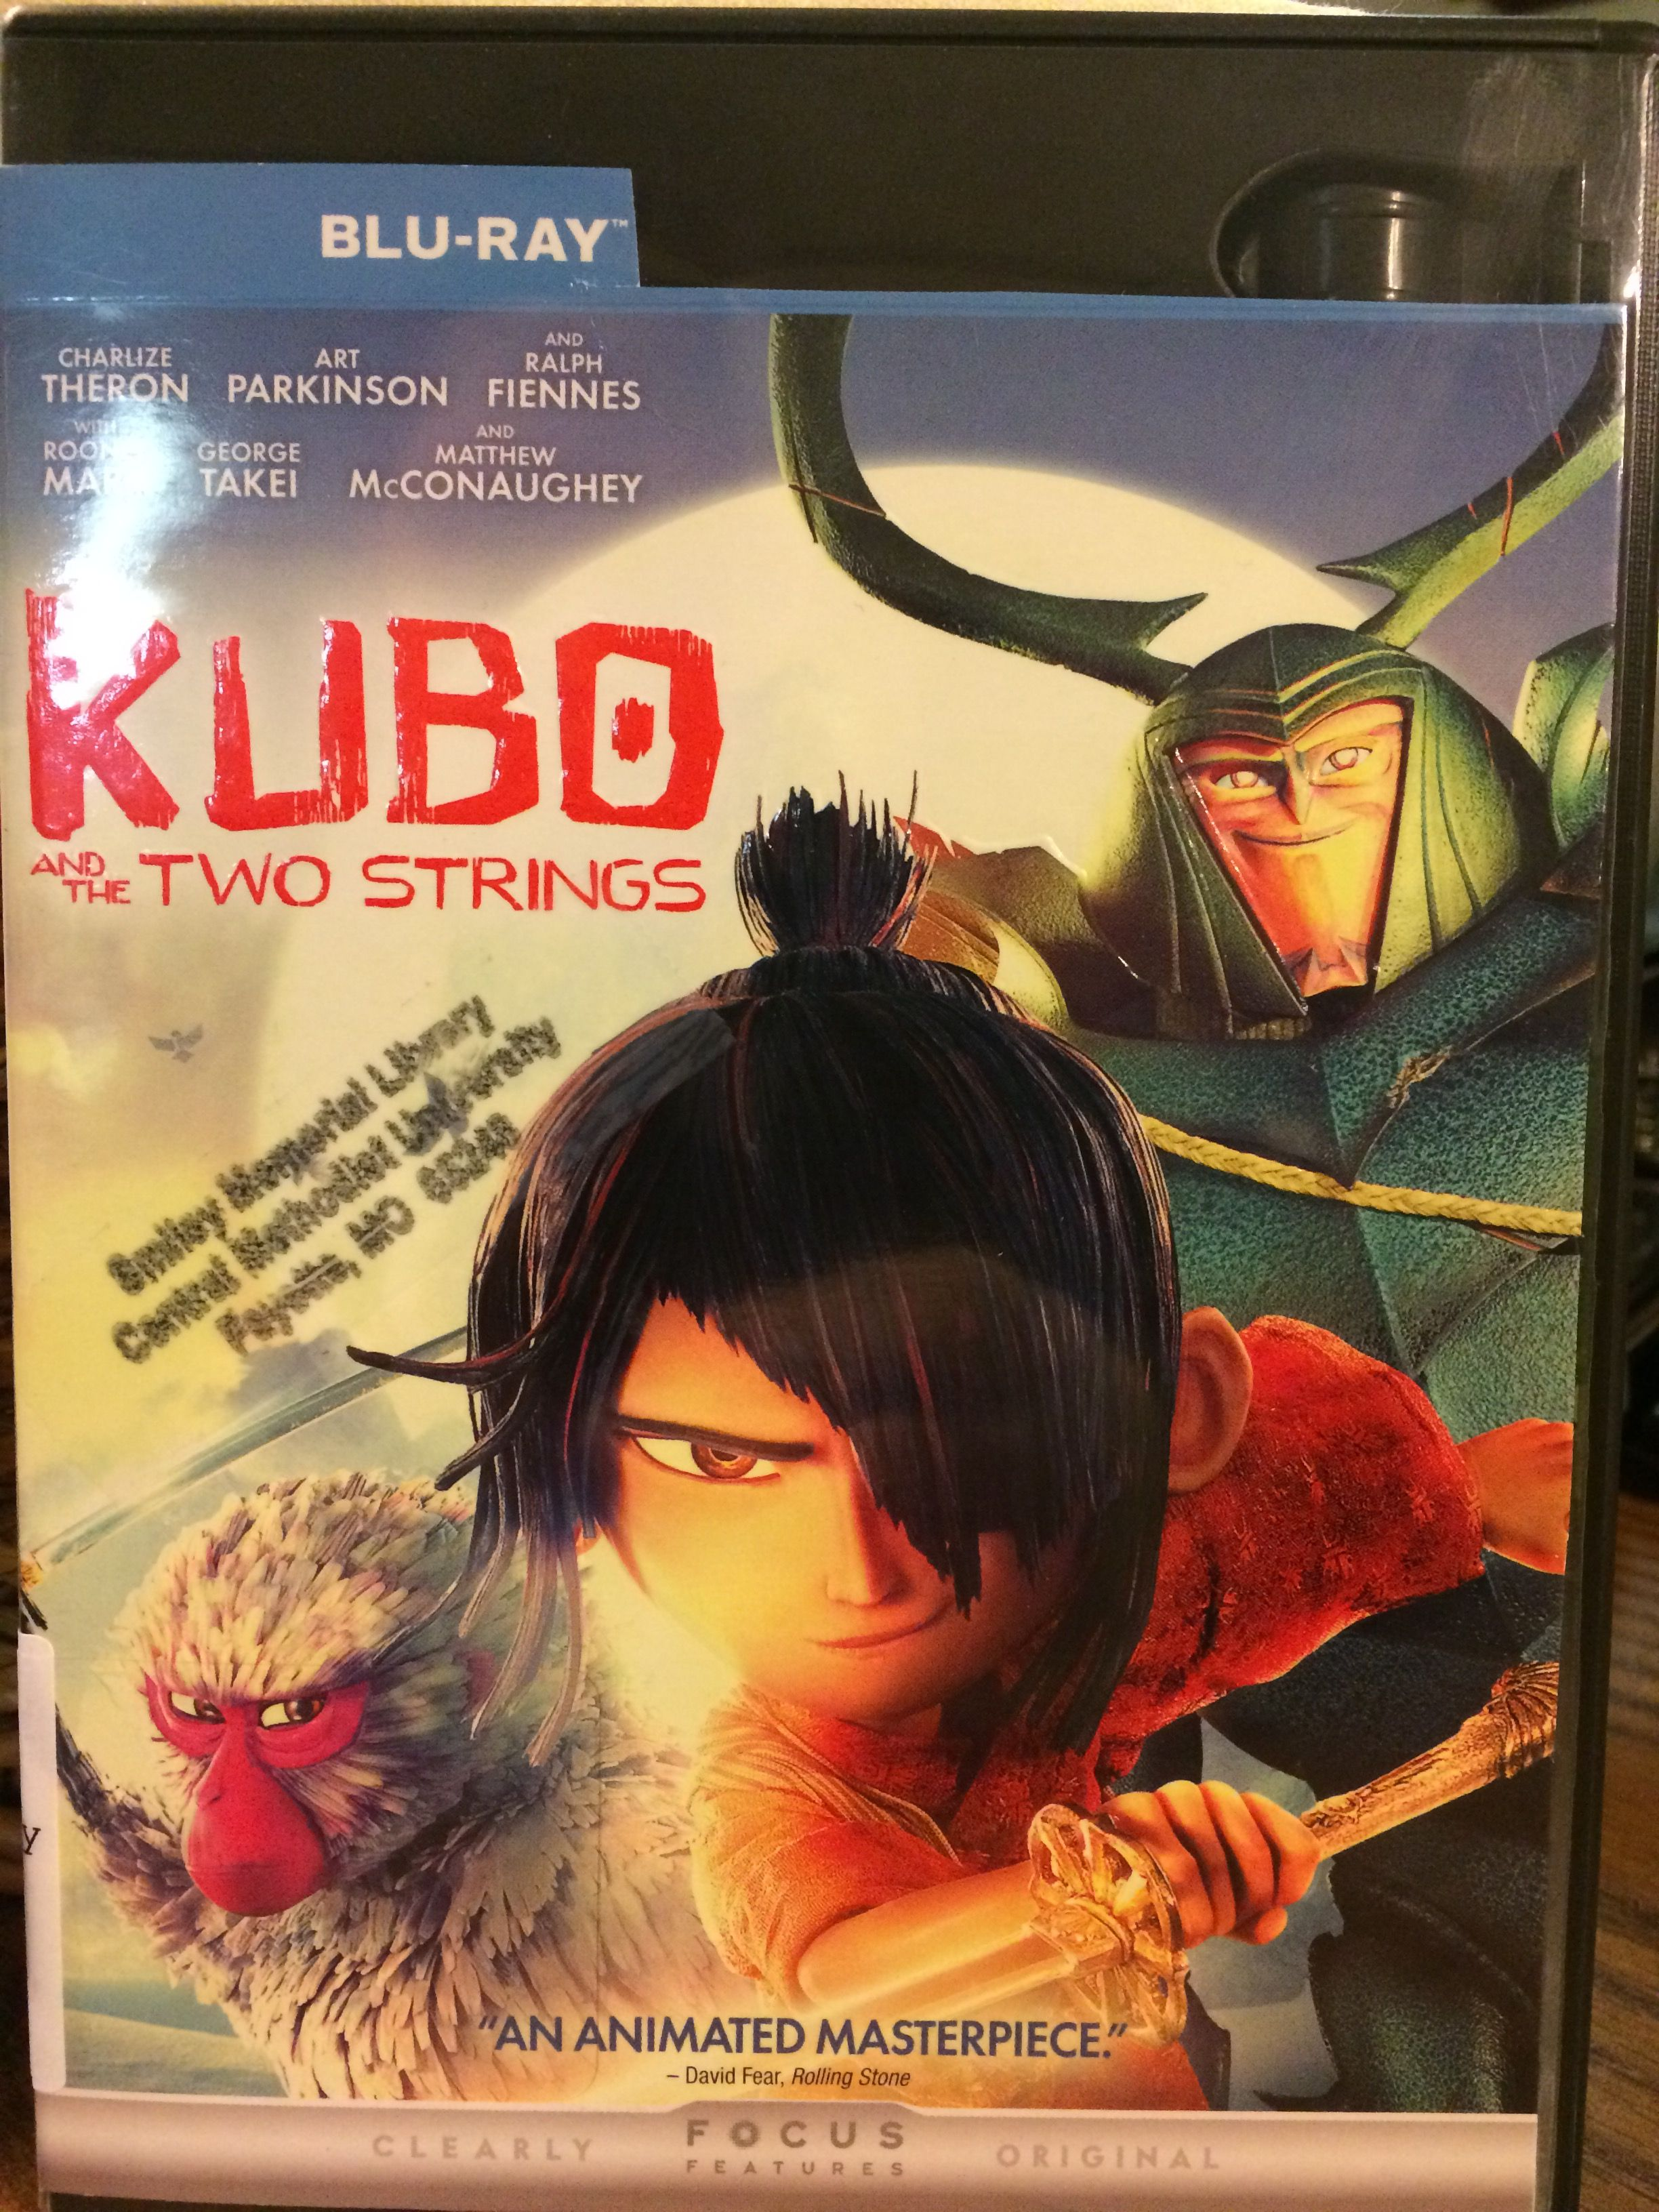 Join Kubo on his quest...